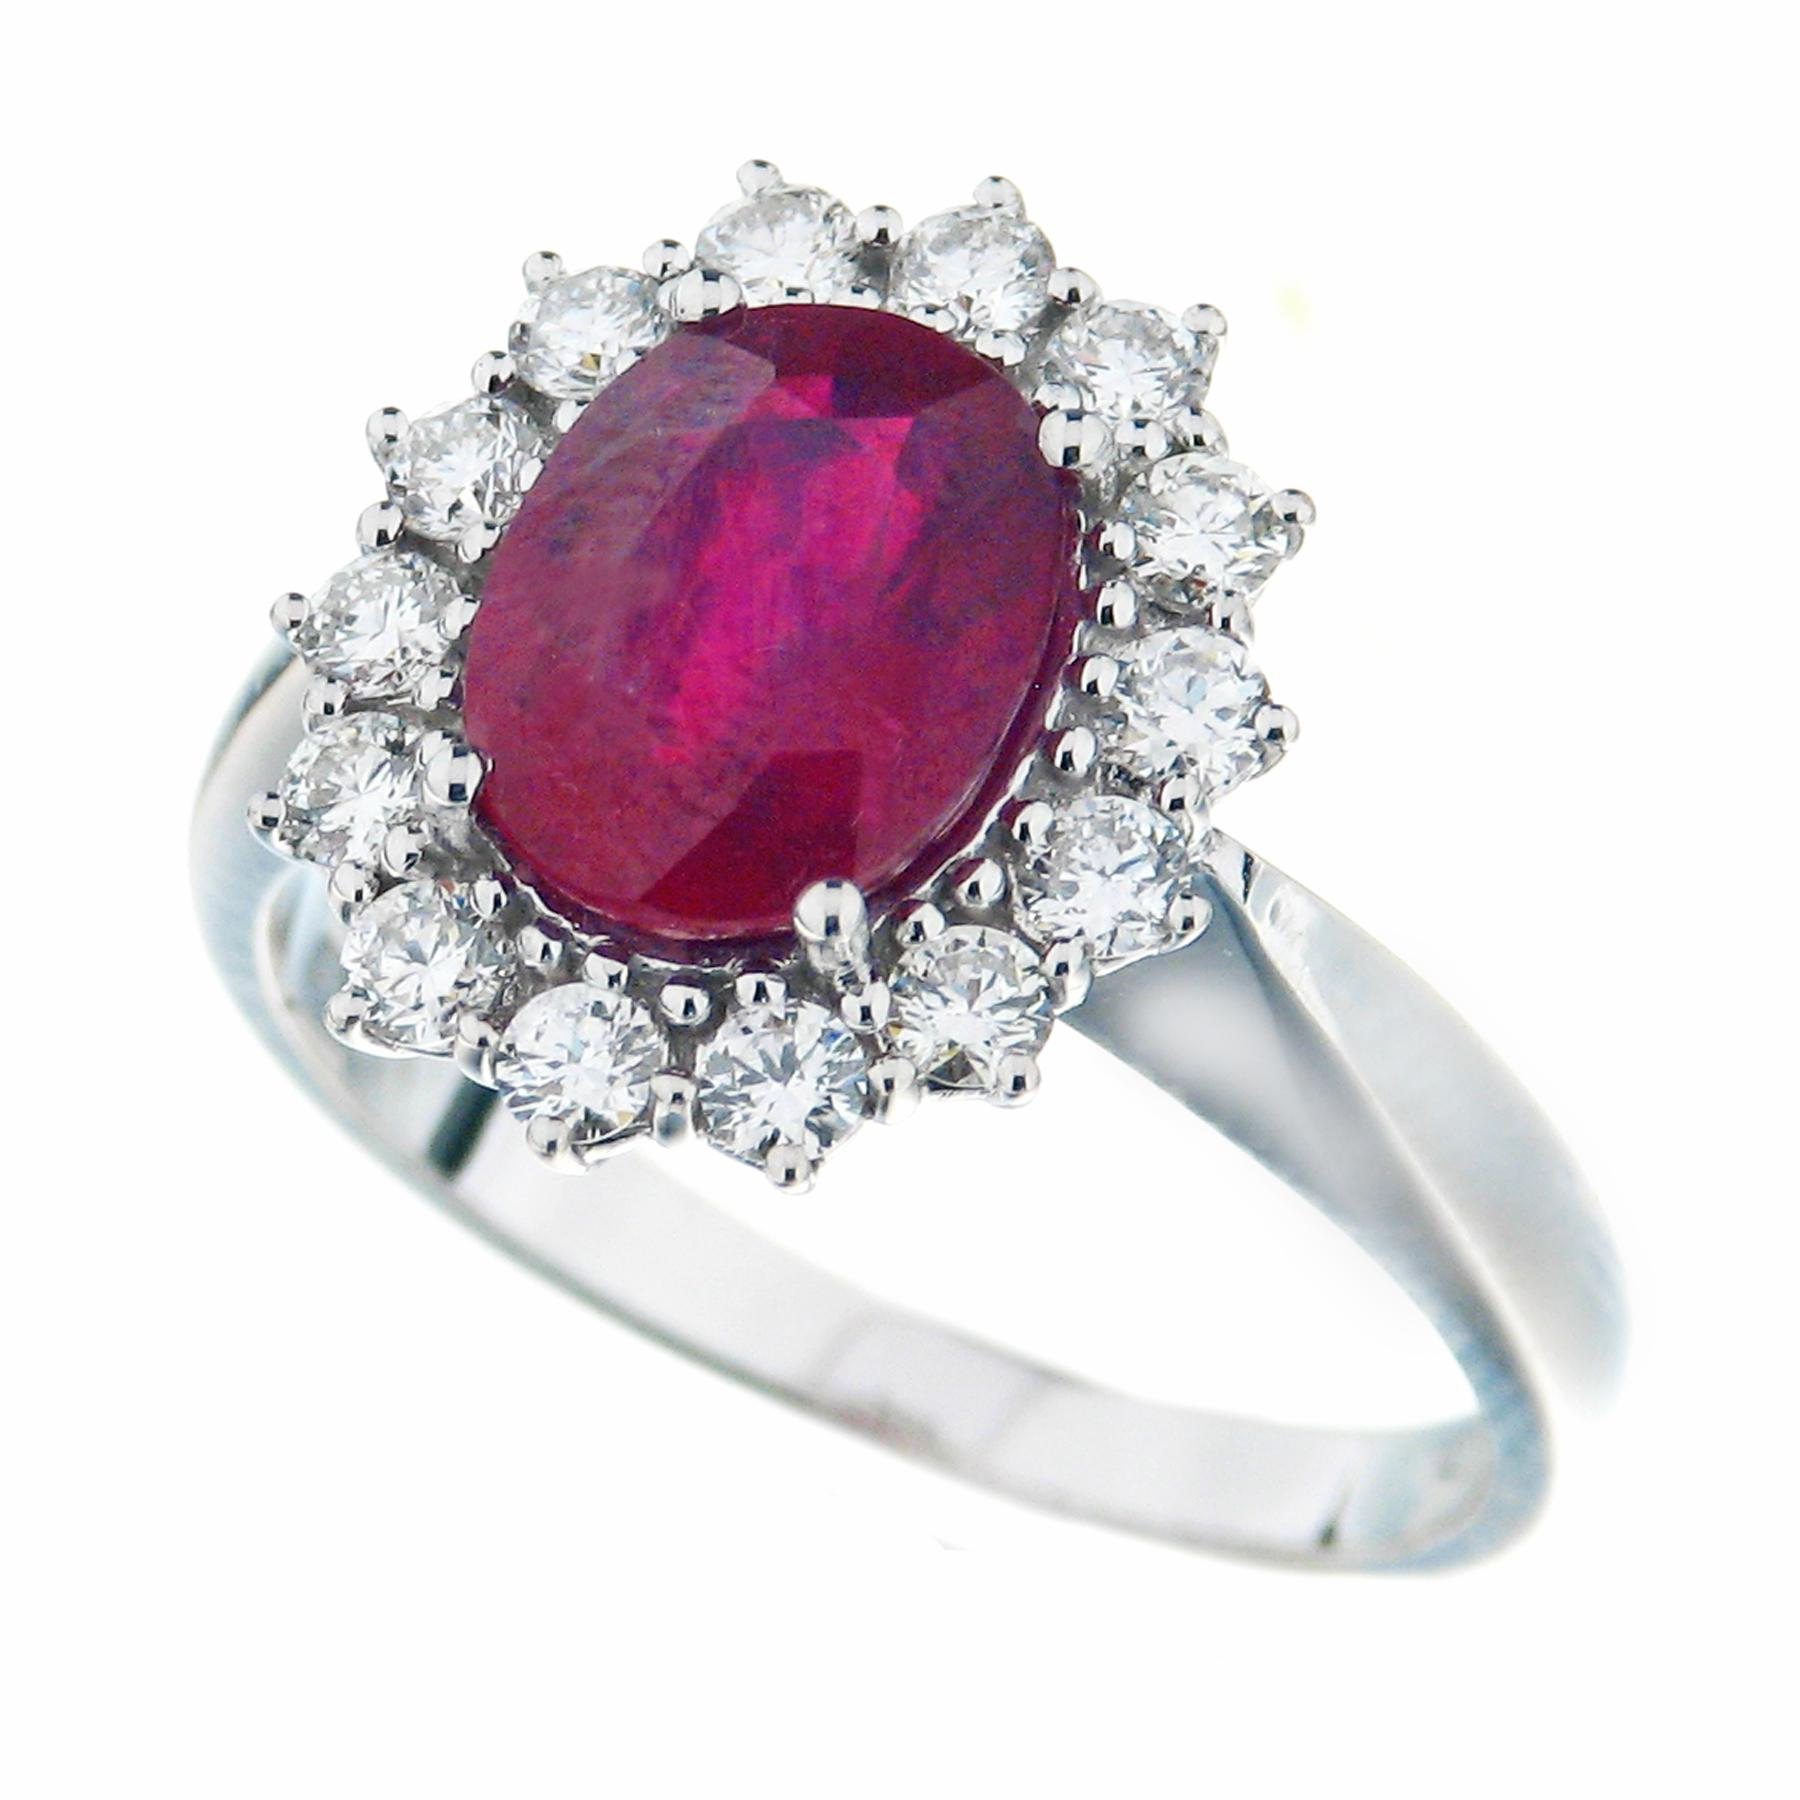 Gival 18ct White Gold Diamond & Ruby Ring 3947/A